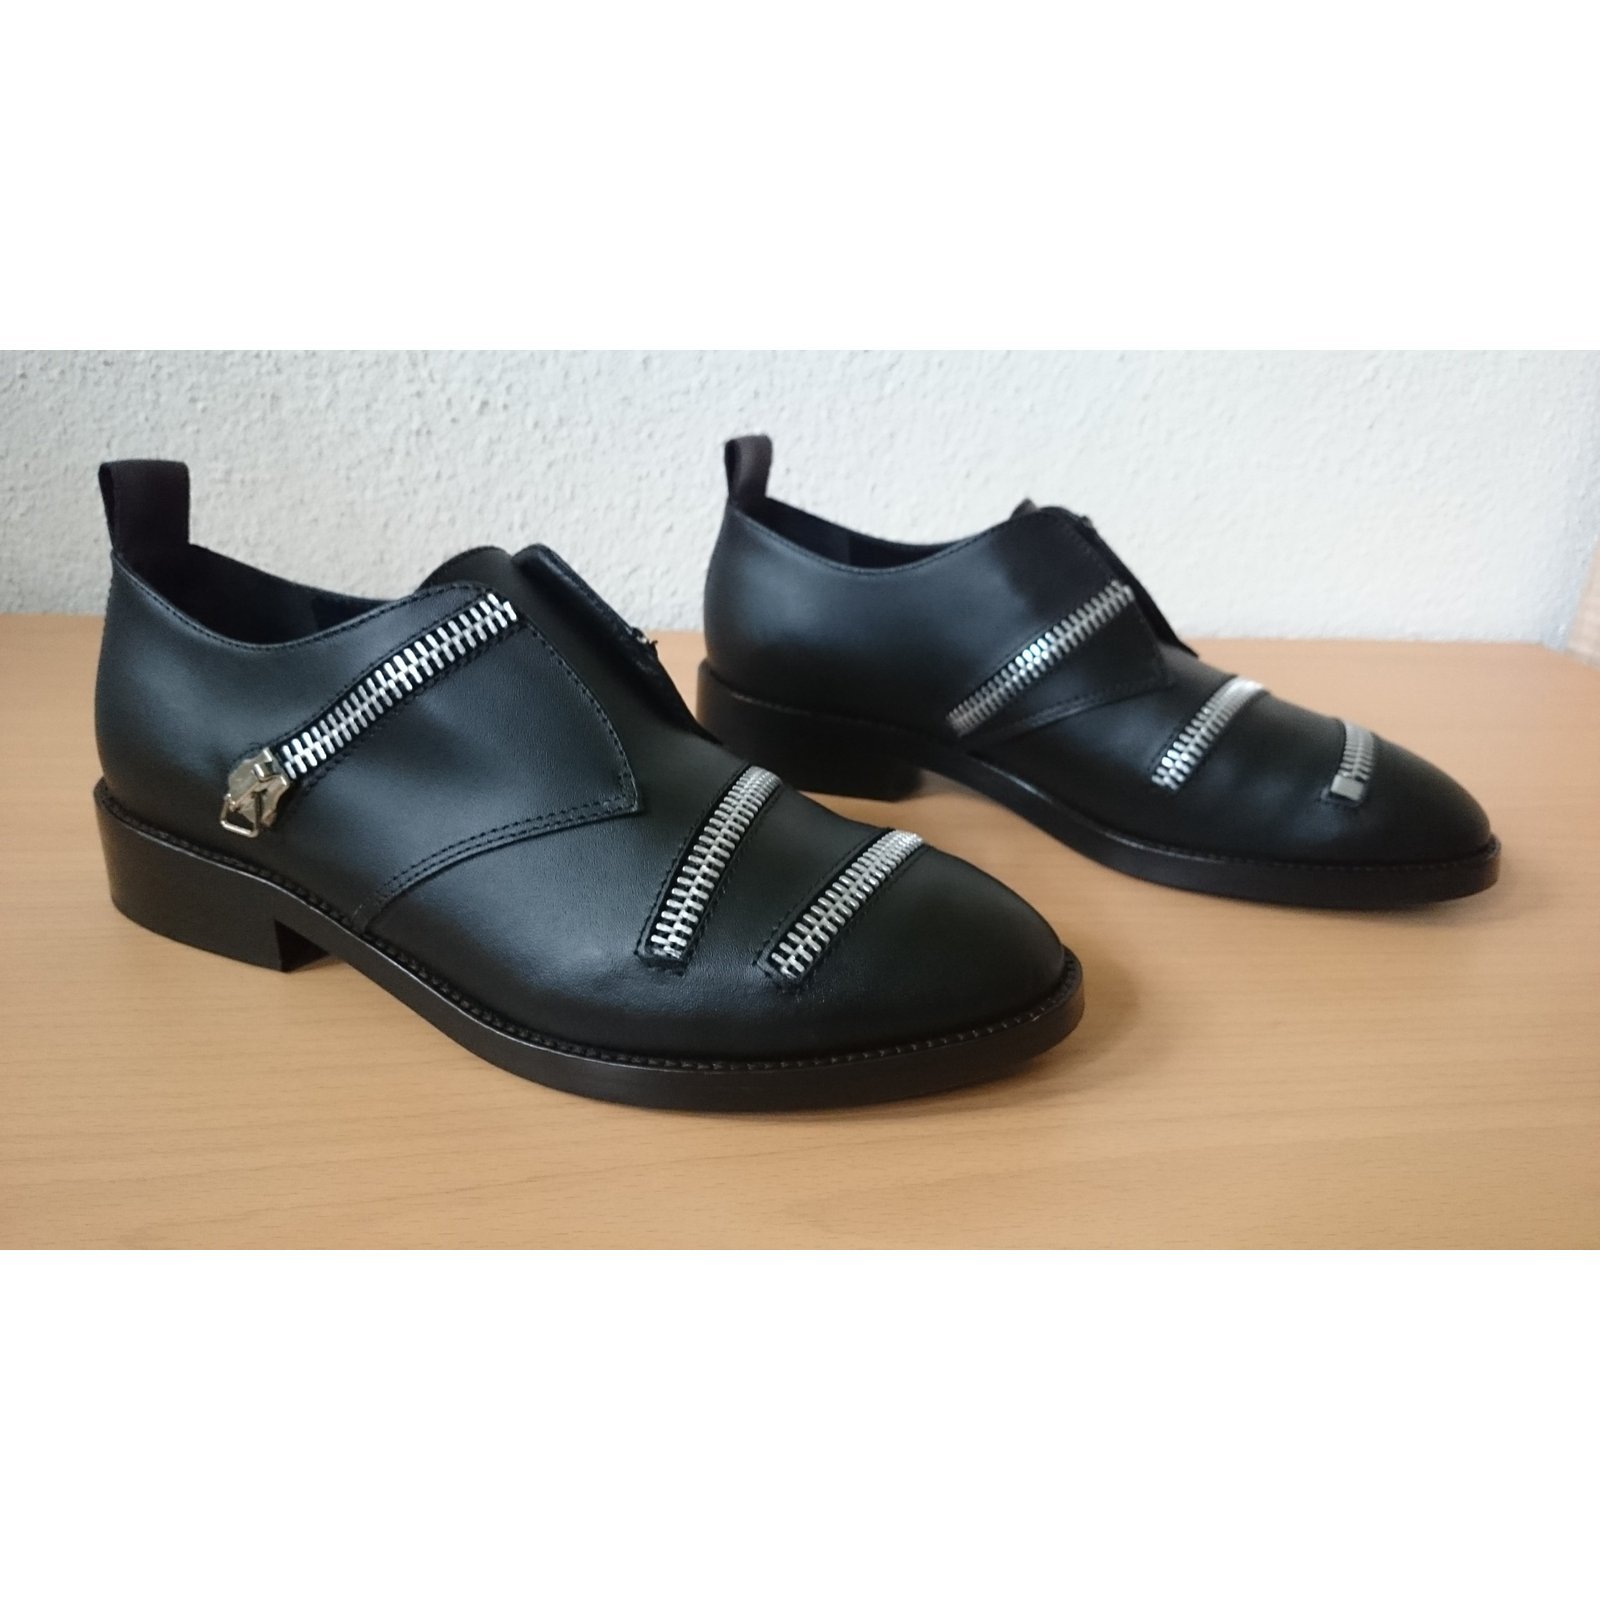 94fc47ab81ea Facebook · Pin This. Golden Goose Loafers Flats Leather Black ref.46042